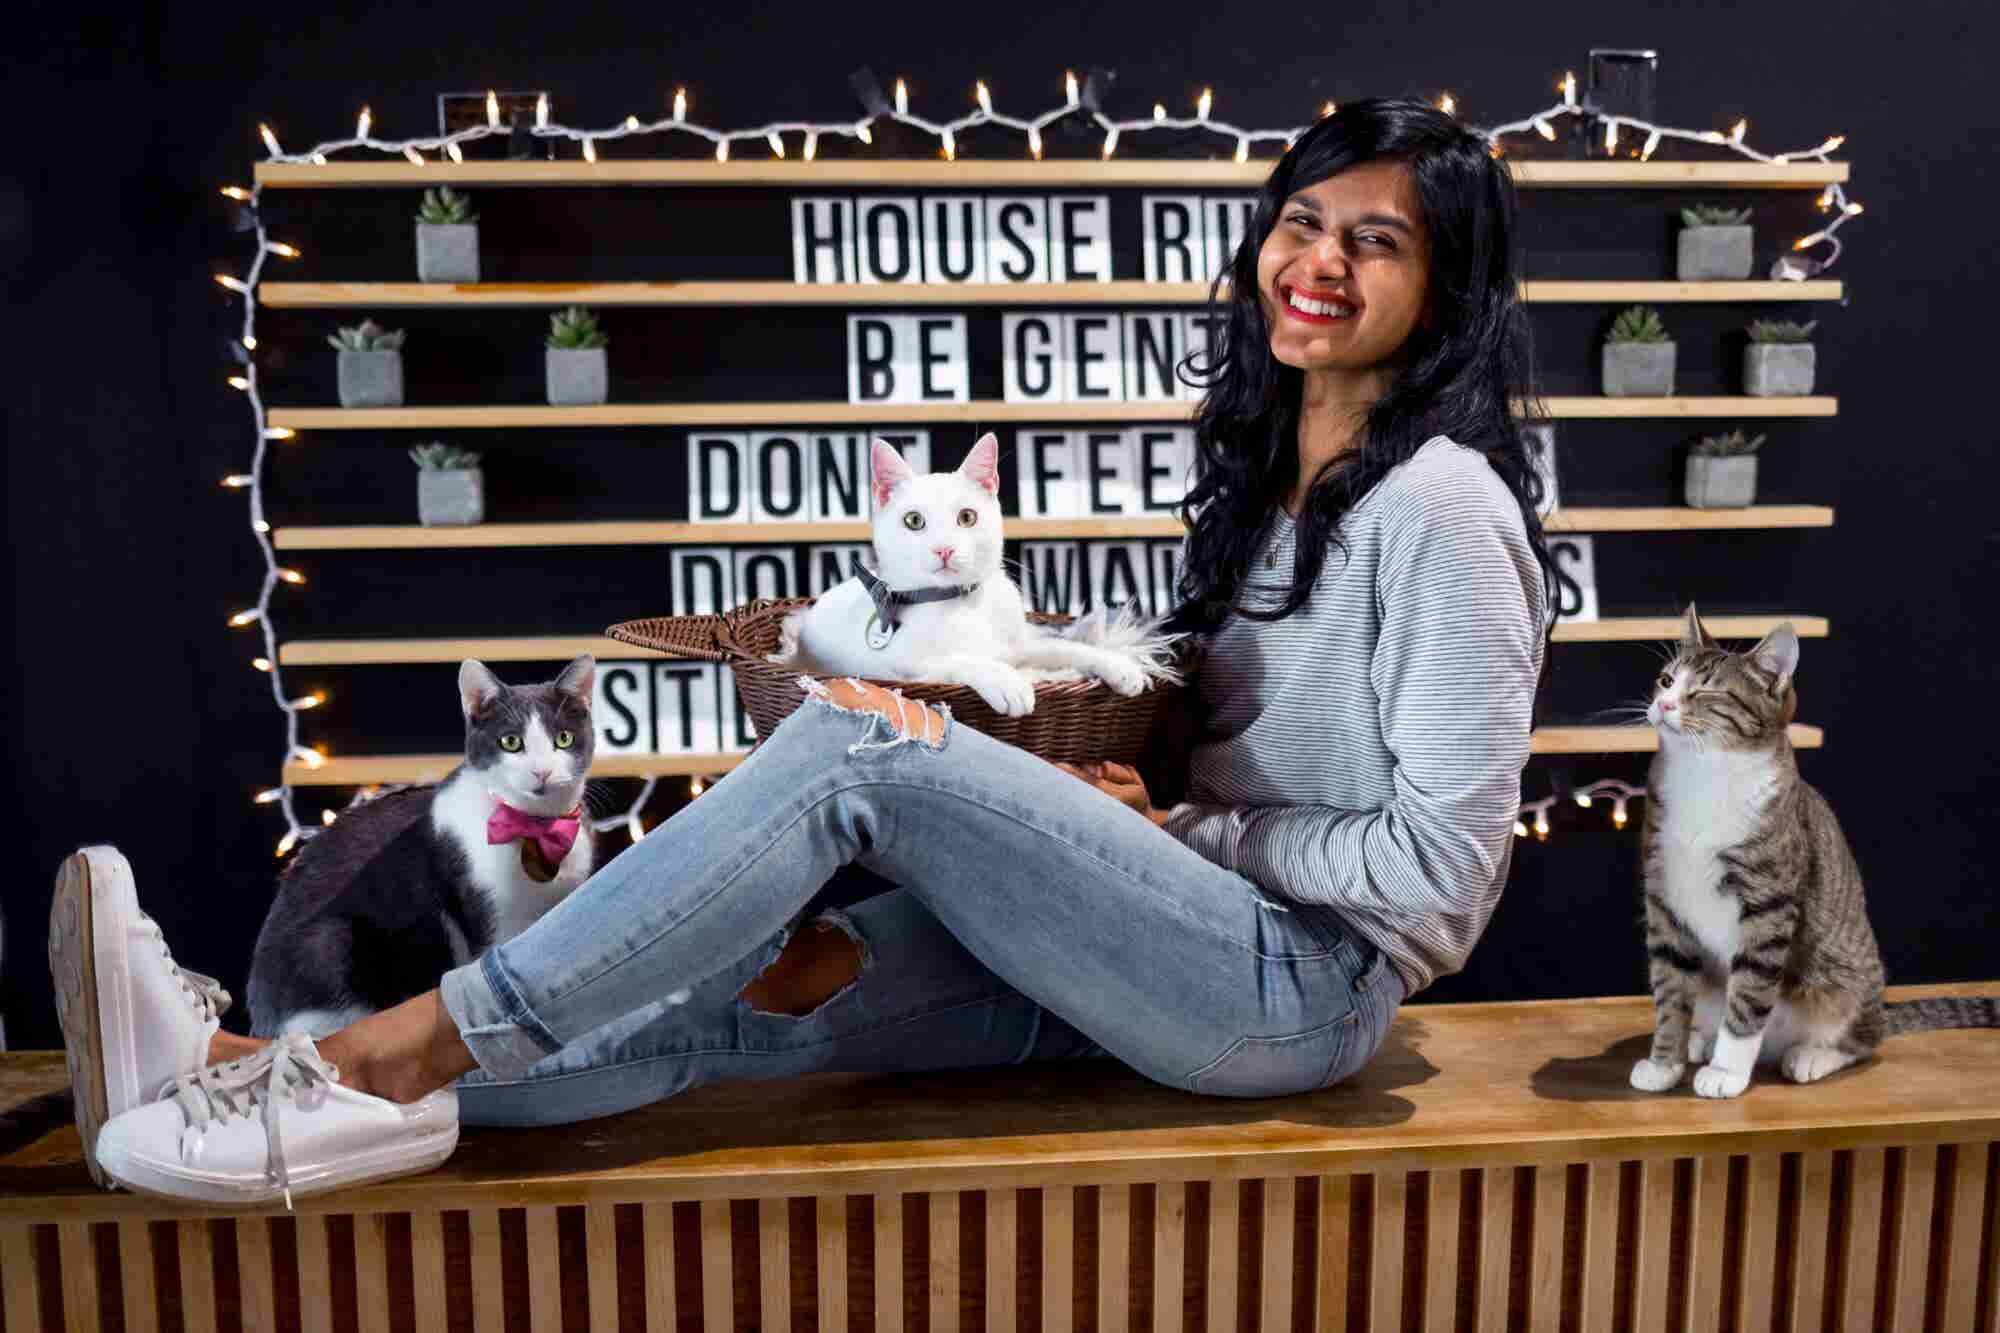 From 'Ow' to 'Meow': A Young Catpreneur Discovers Her Own Meaning of Success